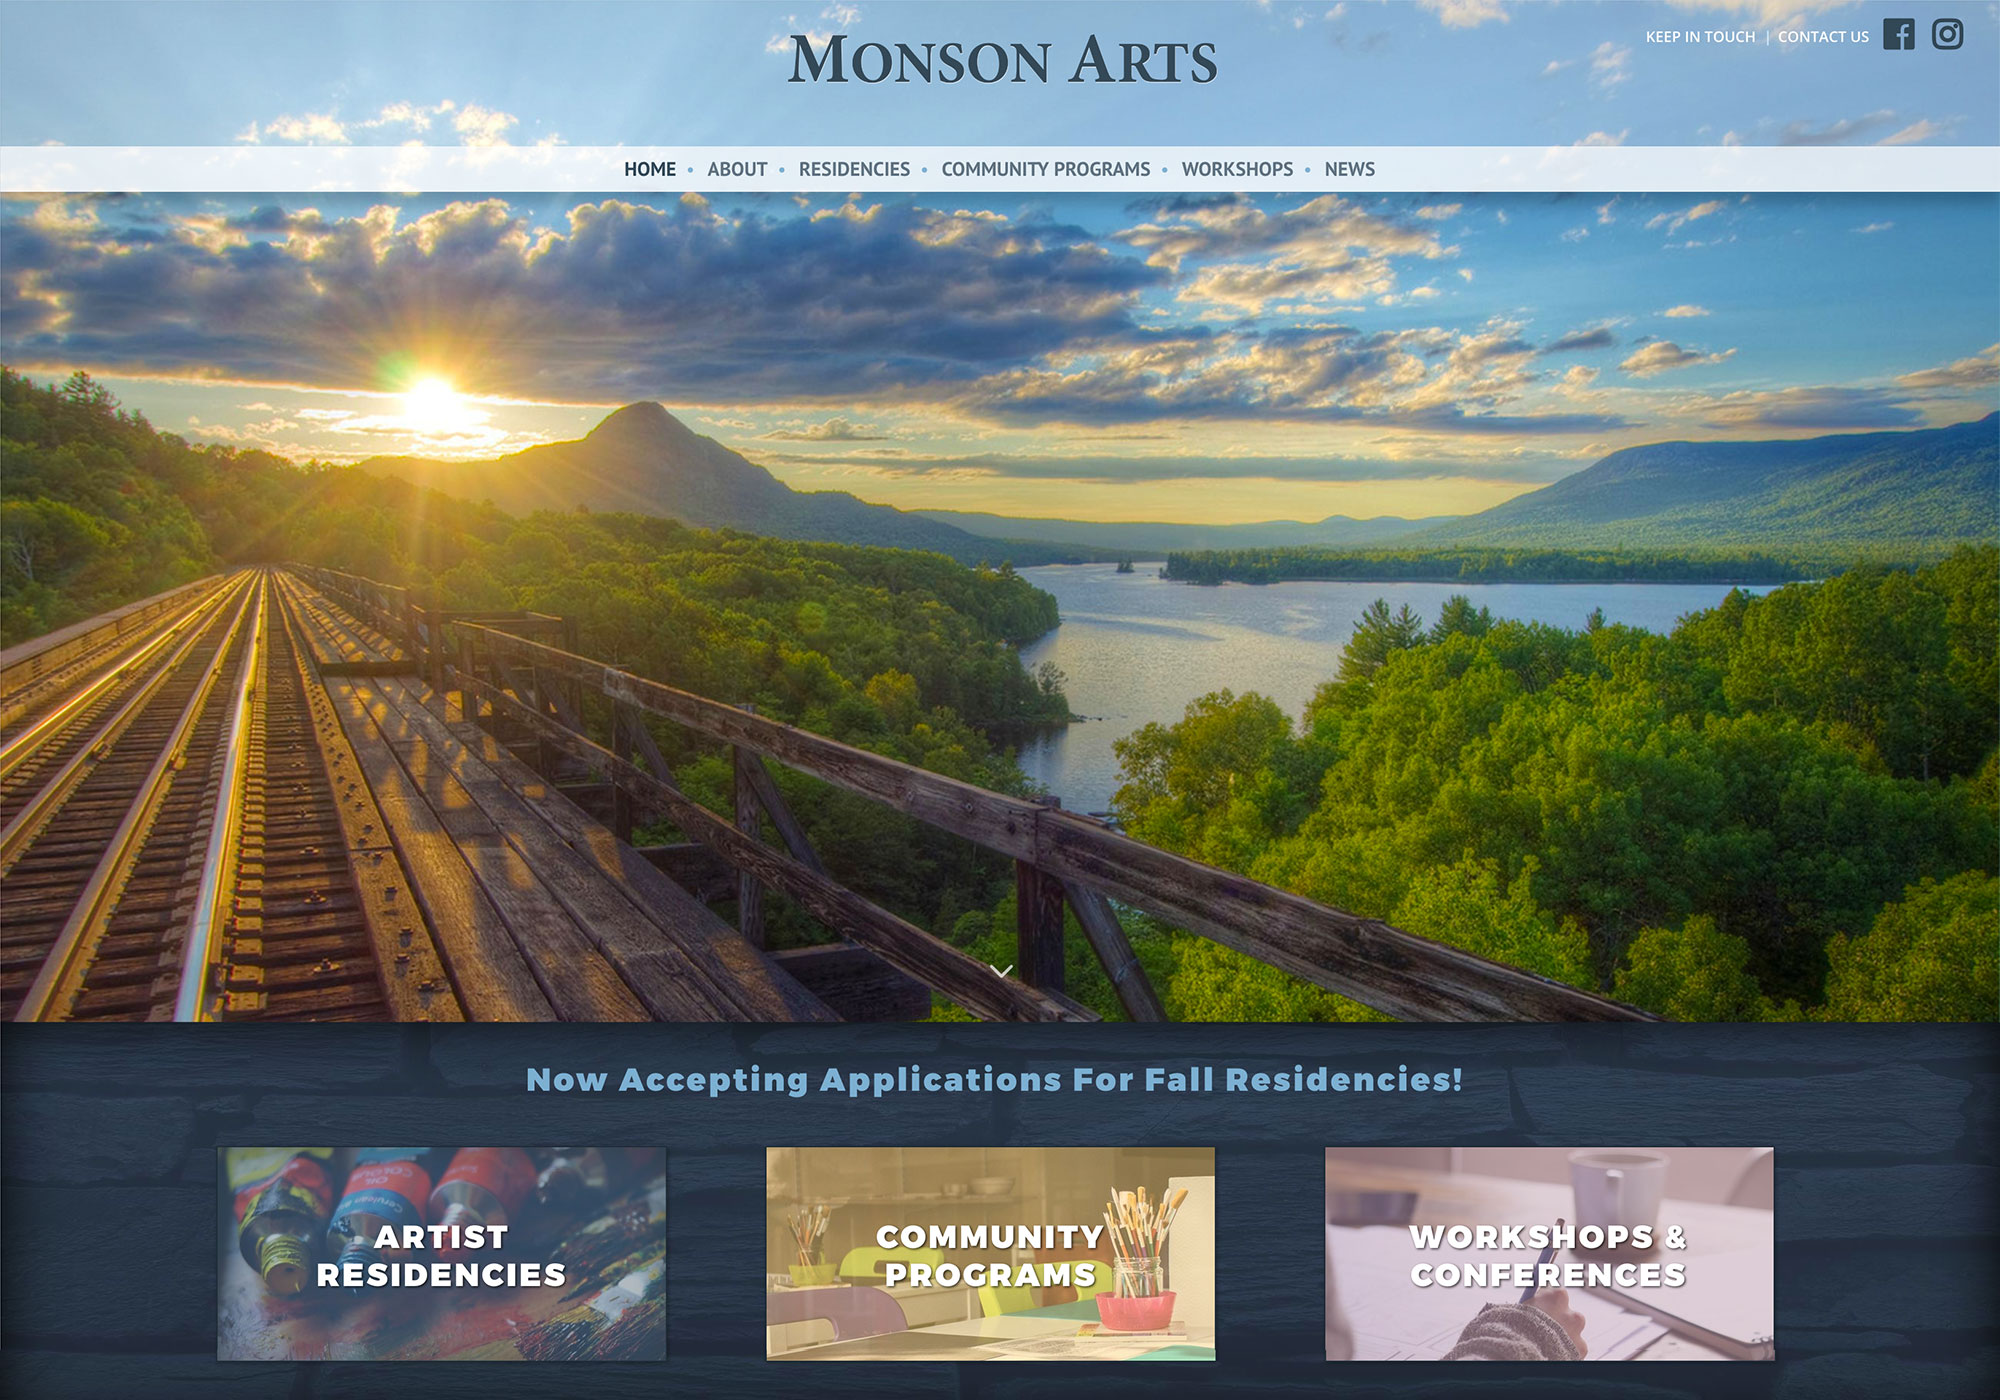 Monson Arts Website by SlickFish Studios